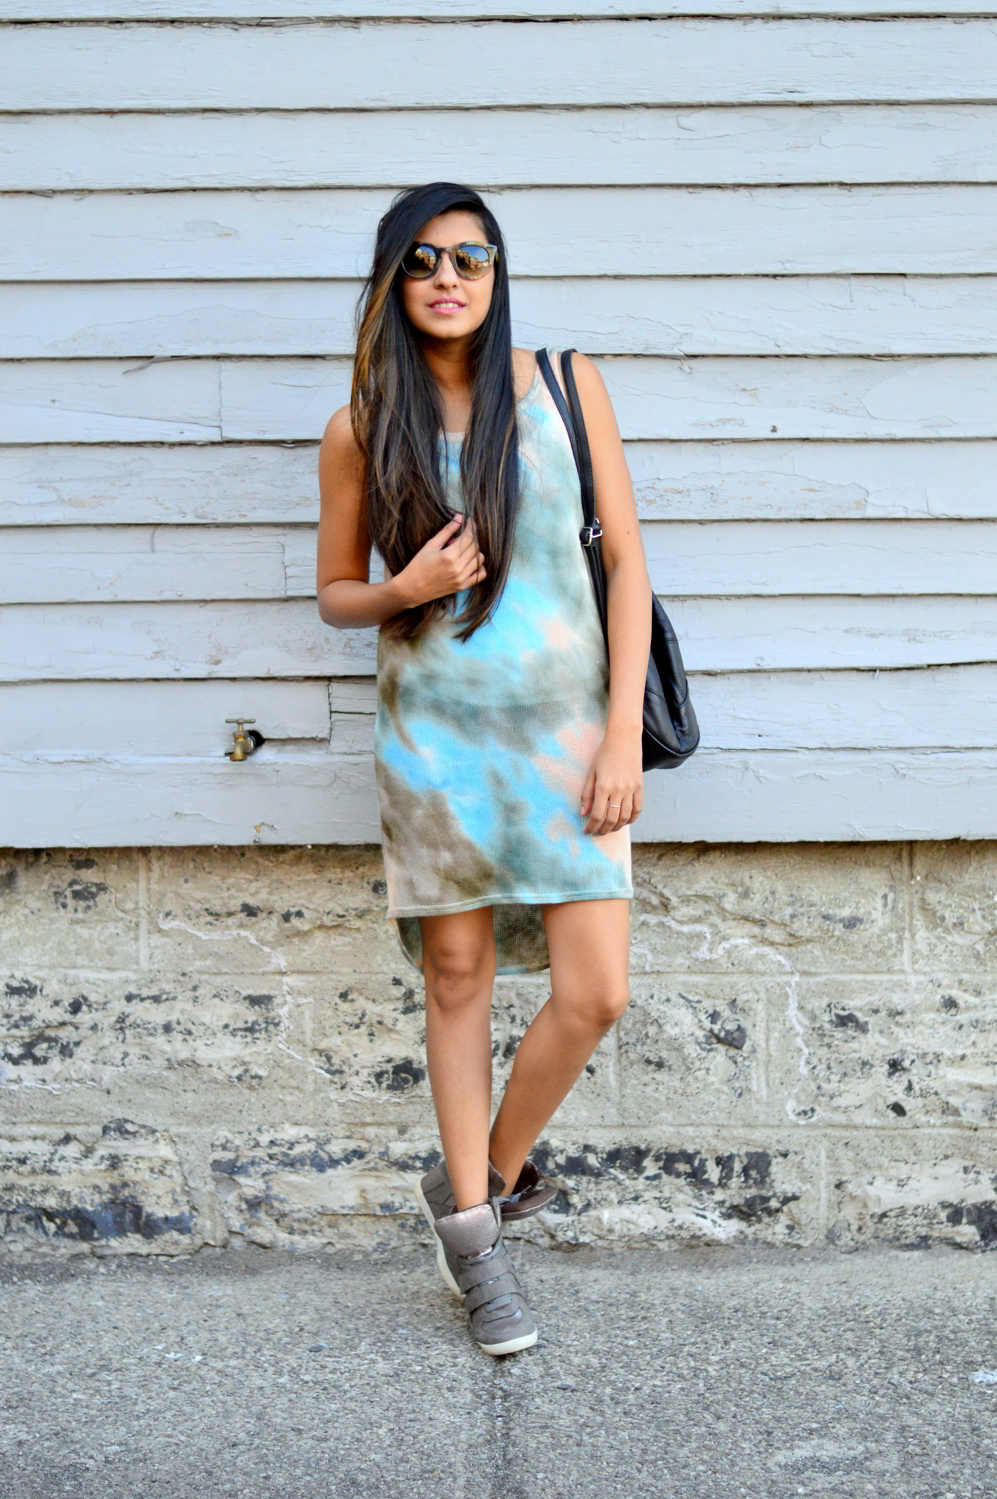 tie-dye-dress-sporty-chic-summer-style-boho-blogger-outfit 3